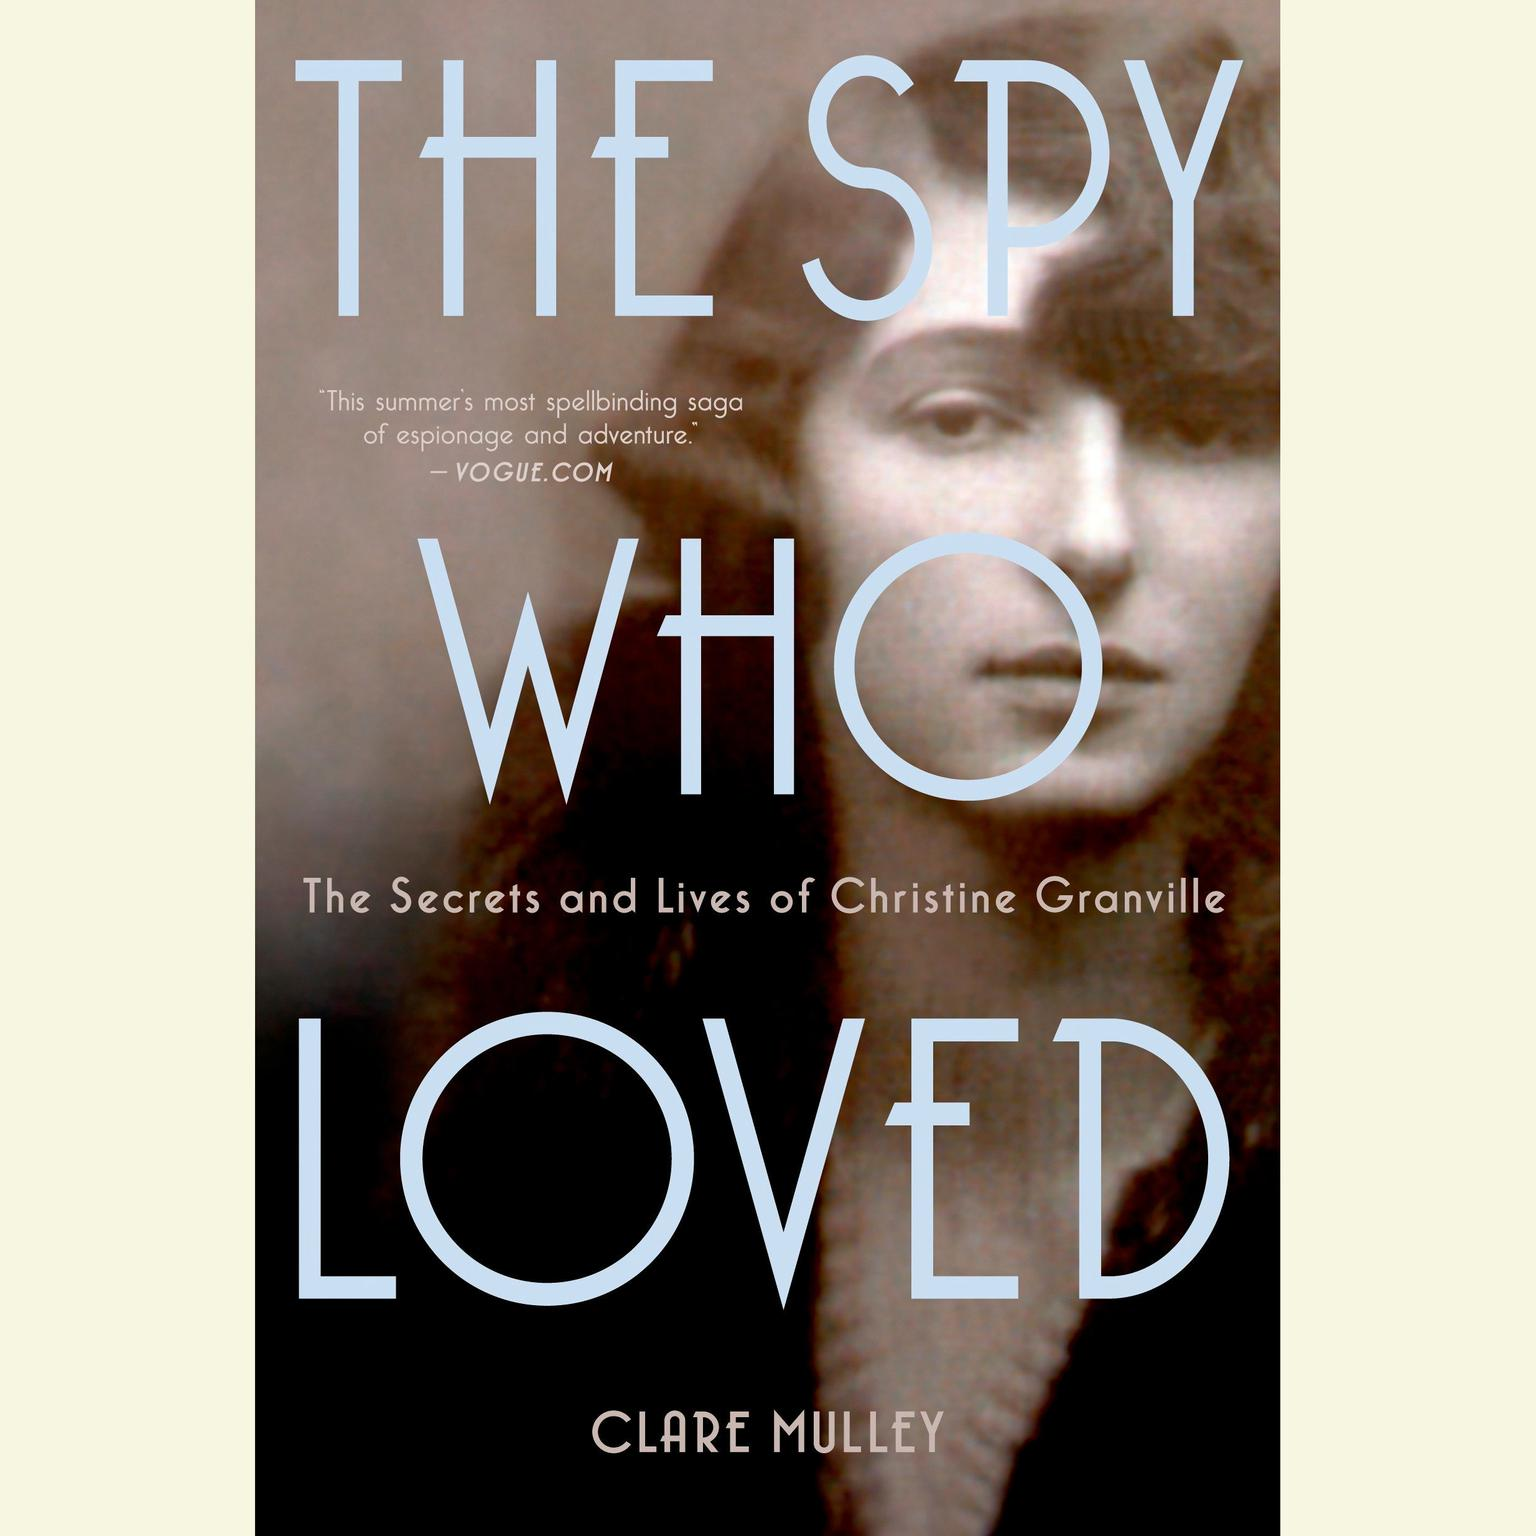 Printable The Spy Who Loved: The Secrets and Lives of One of Britain's Bravest Wartime Heroes Audiobook Cover Art